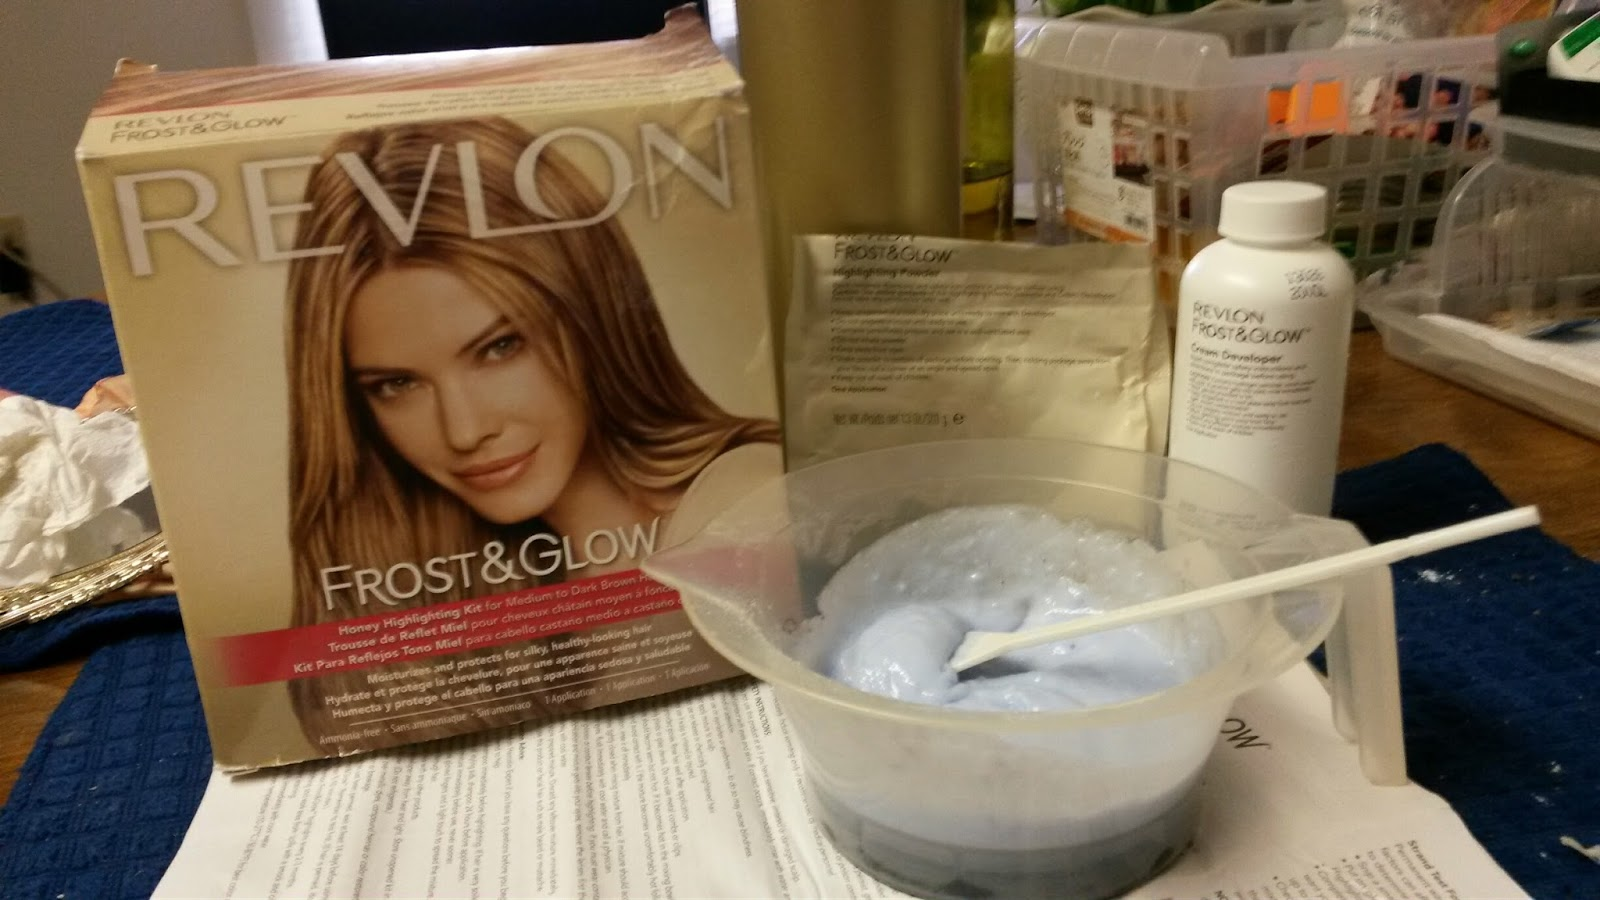 The filipina then and now more thrift tips to save on hair streaks or highlight it would be better to do it yourself by using revlon frost glow although the box instructions would say mix the solutioingenieria Choice Image